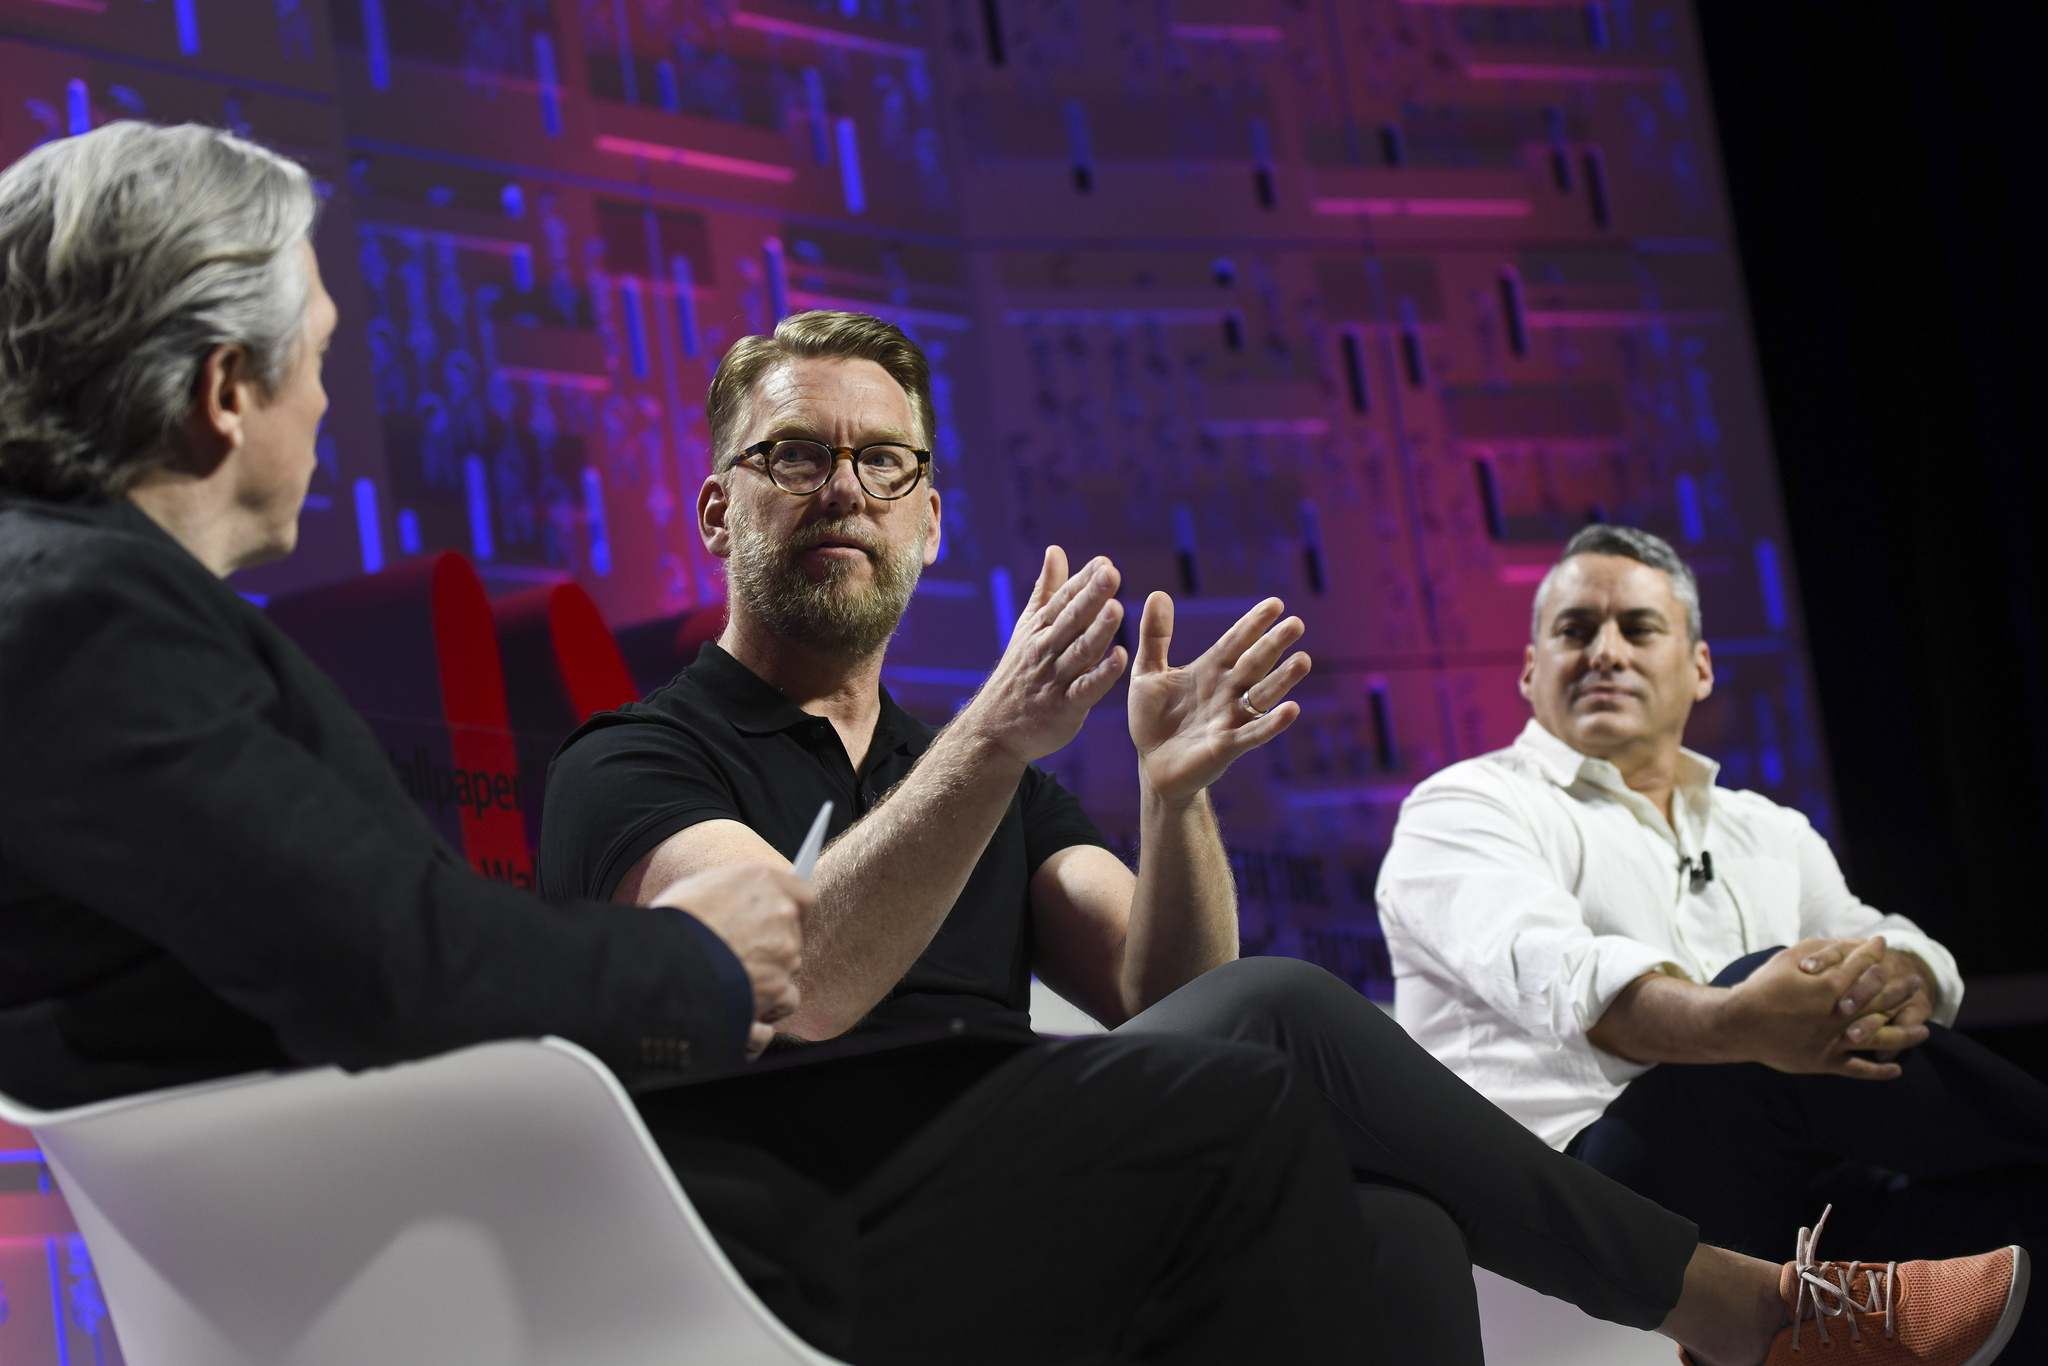 Doug Powell of IBM (middle) and Nathan Shedroff of Seed Vault (right) with Clay Chandler of Fortune at the 2019 Fortune Brainstorm Design conference in Singapore.